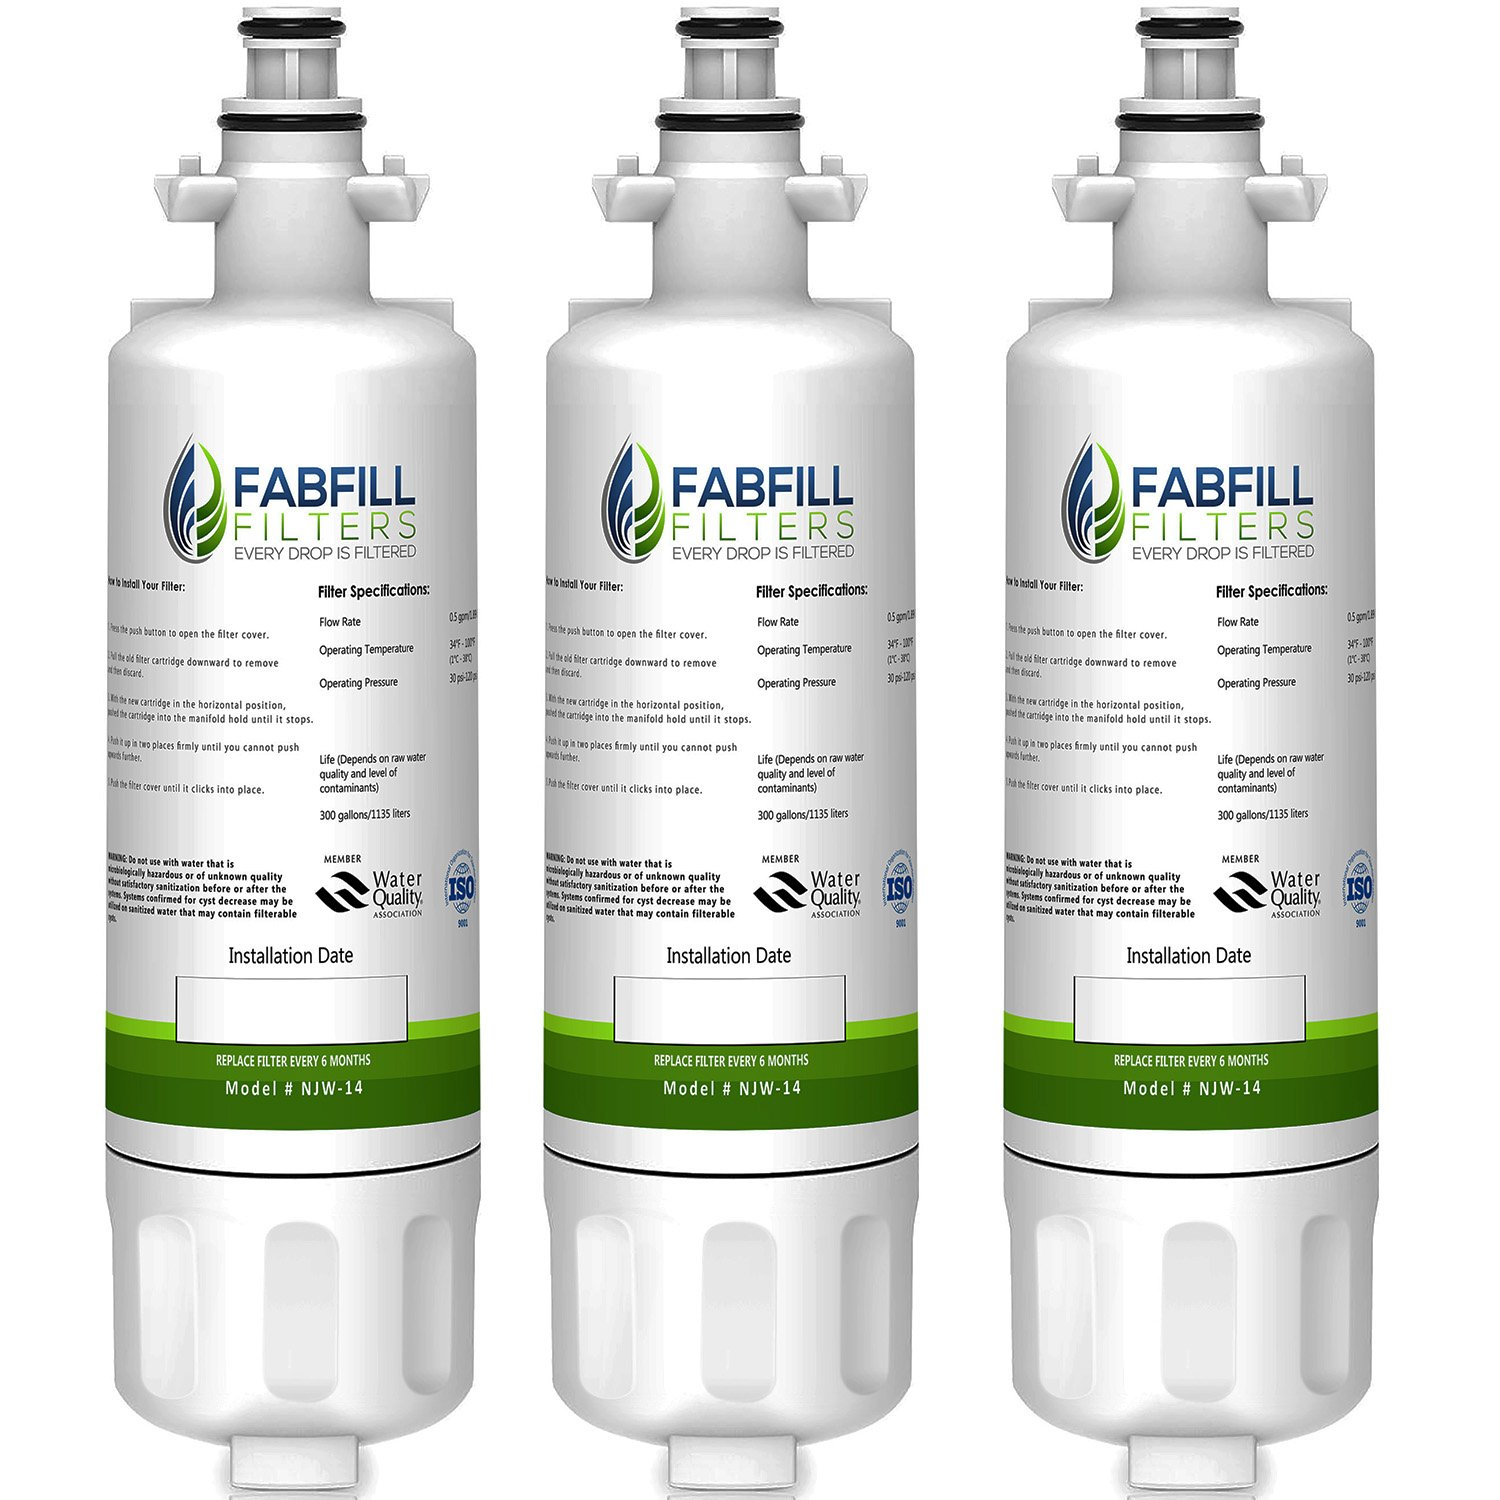 Fabfill LT700P LG Refrigerator Water Filter Compatible replacement cartridge and fits for KENMORE 9690, 46-9690, ADQ36006101, ADQ36006102 (3 Pack)